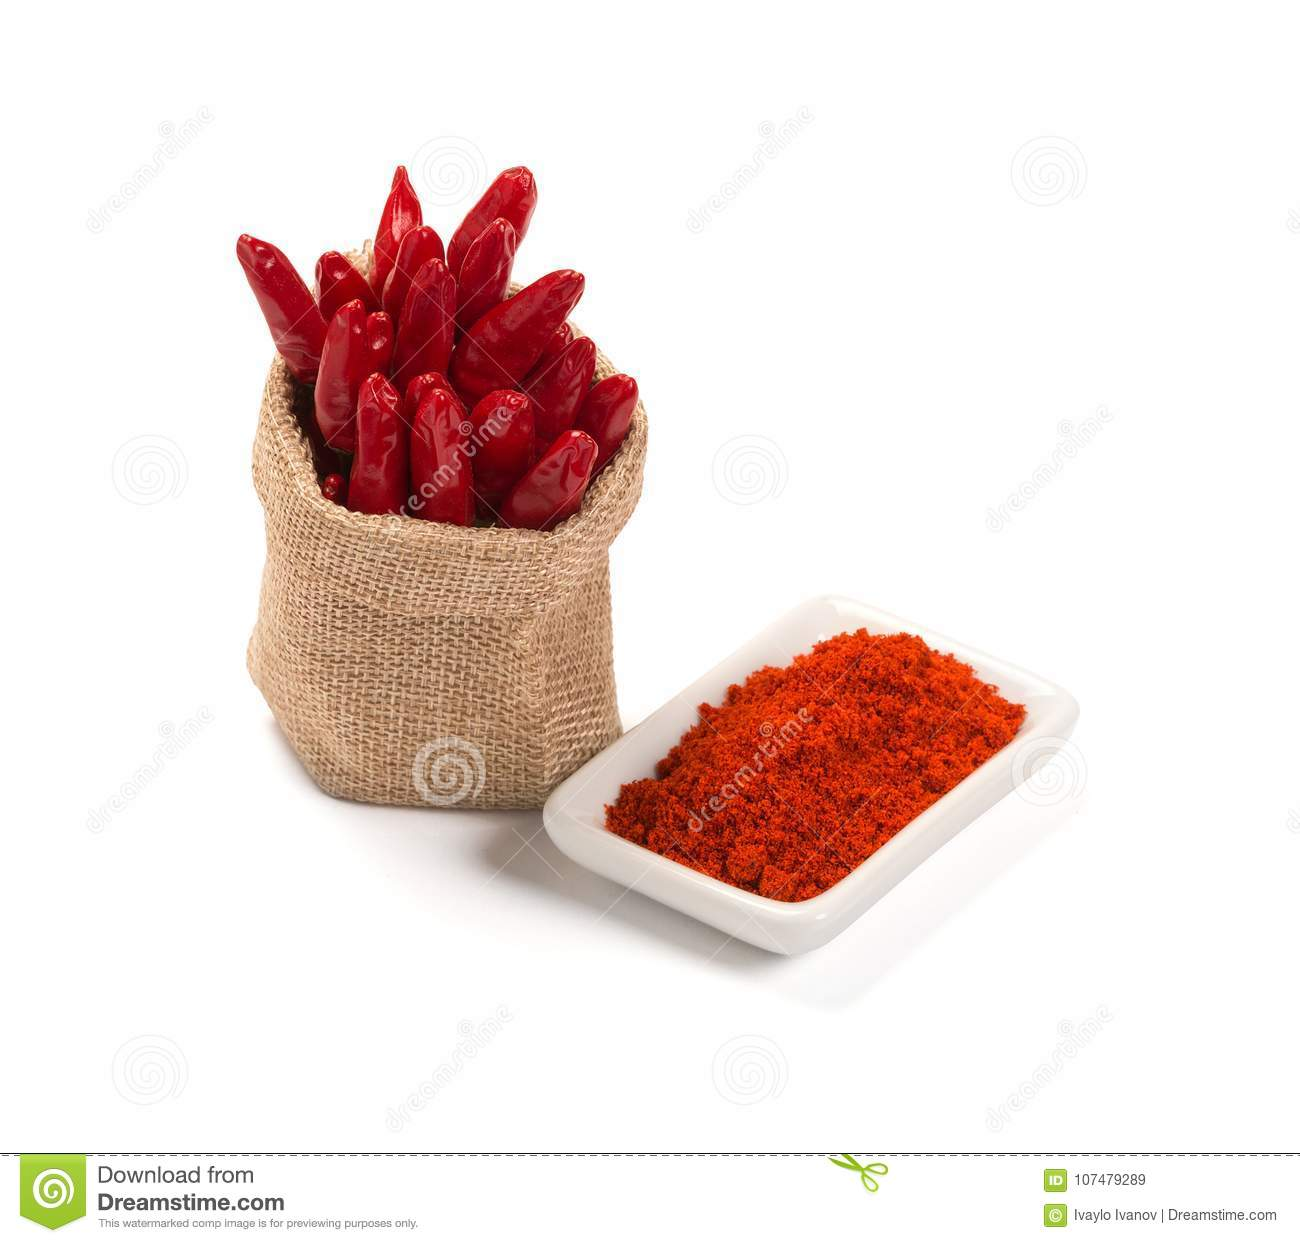 Bowl of ground red pepper spice in bowl on white